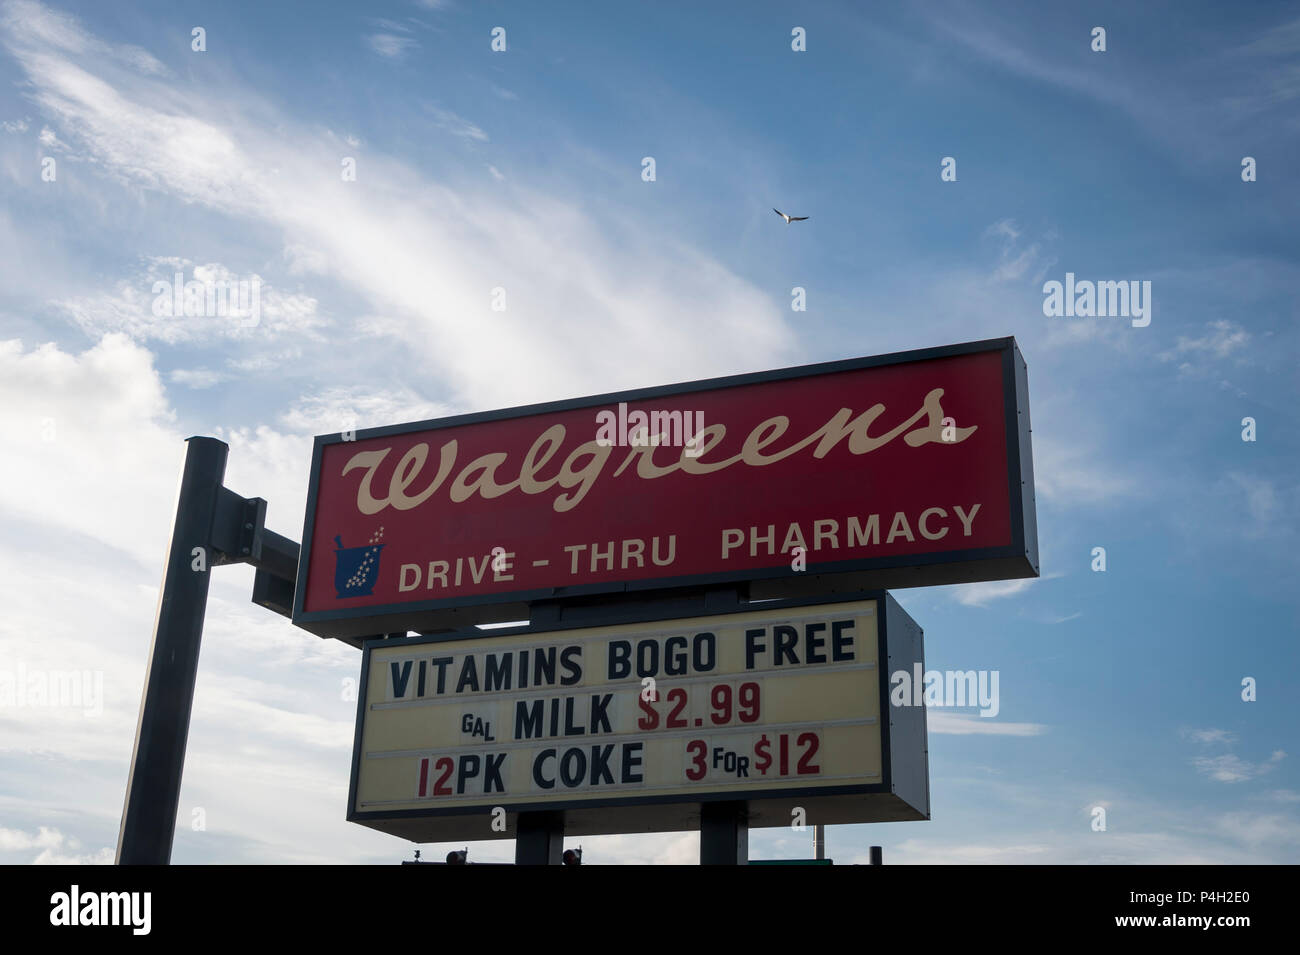 Walgreens Drive Thru Pharmacy Sign Above An Intersection Stock